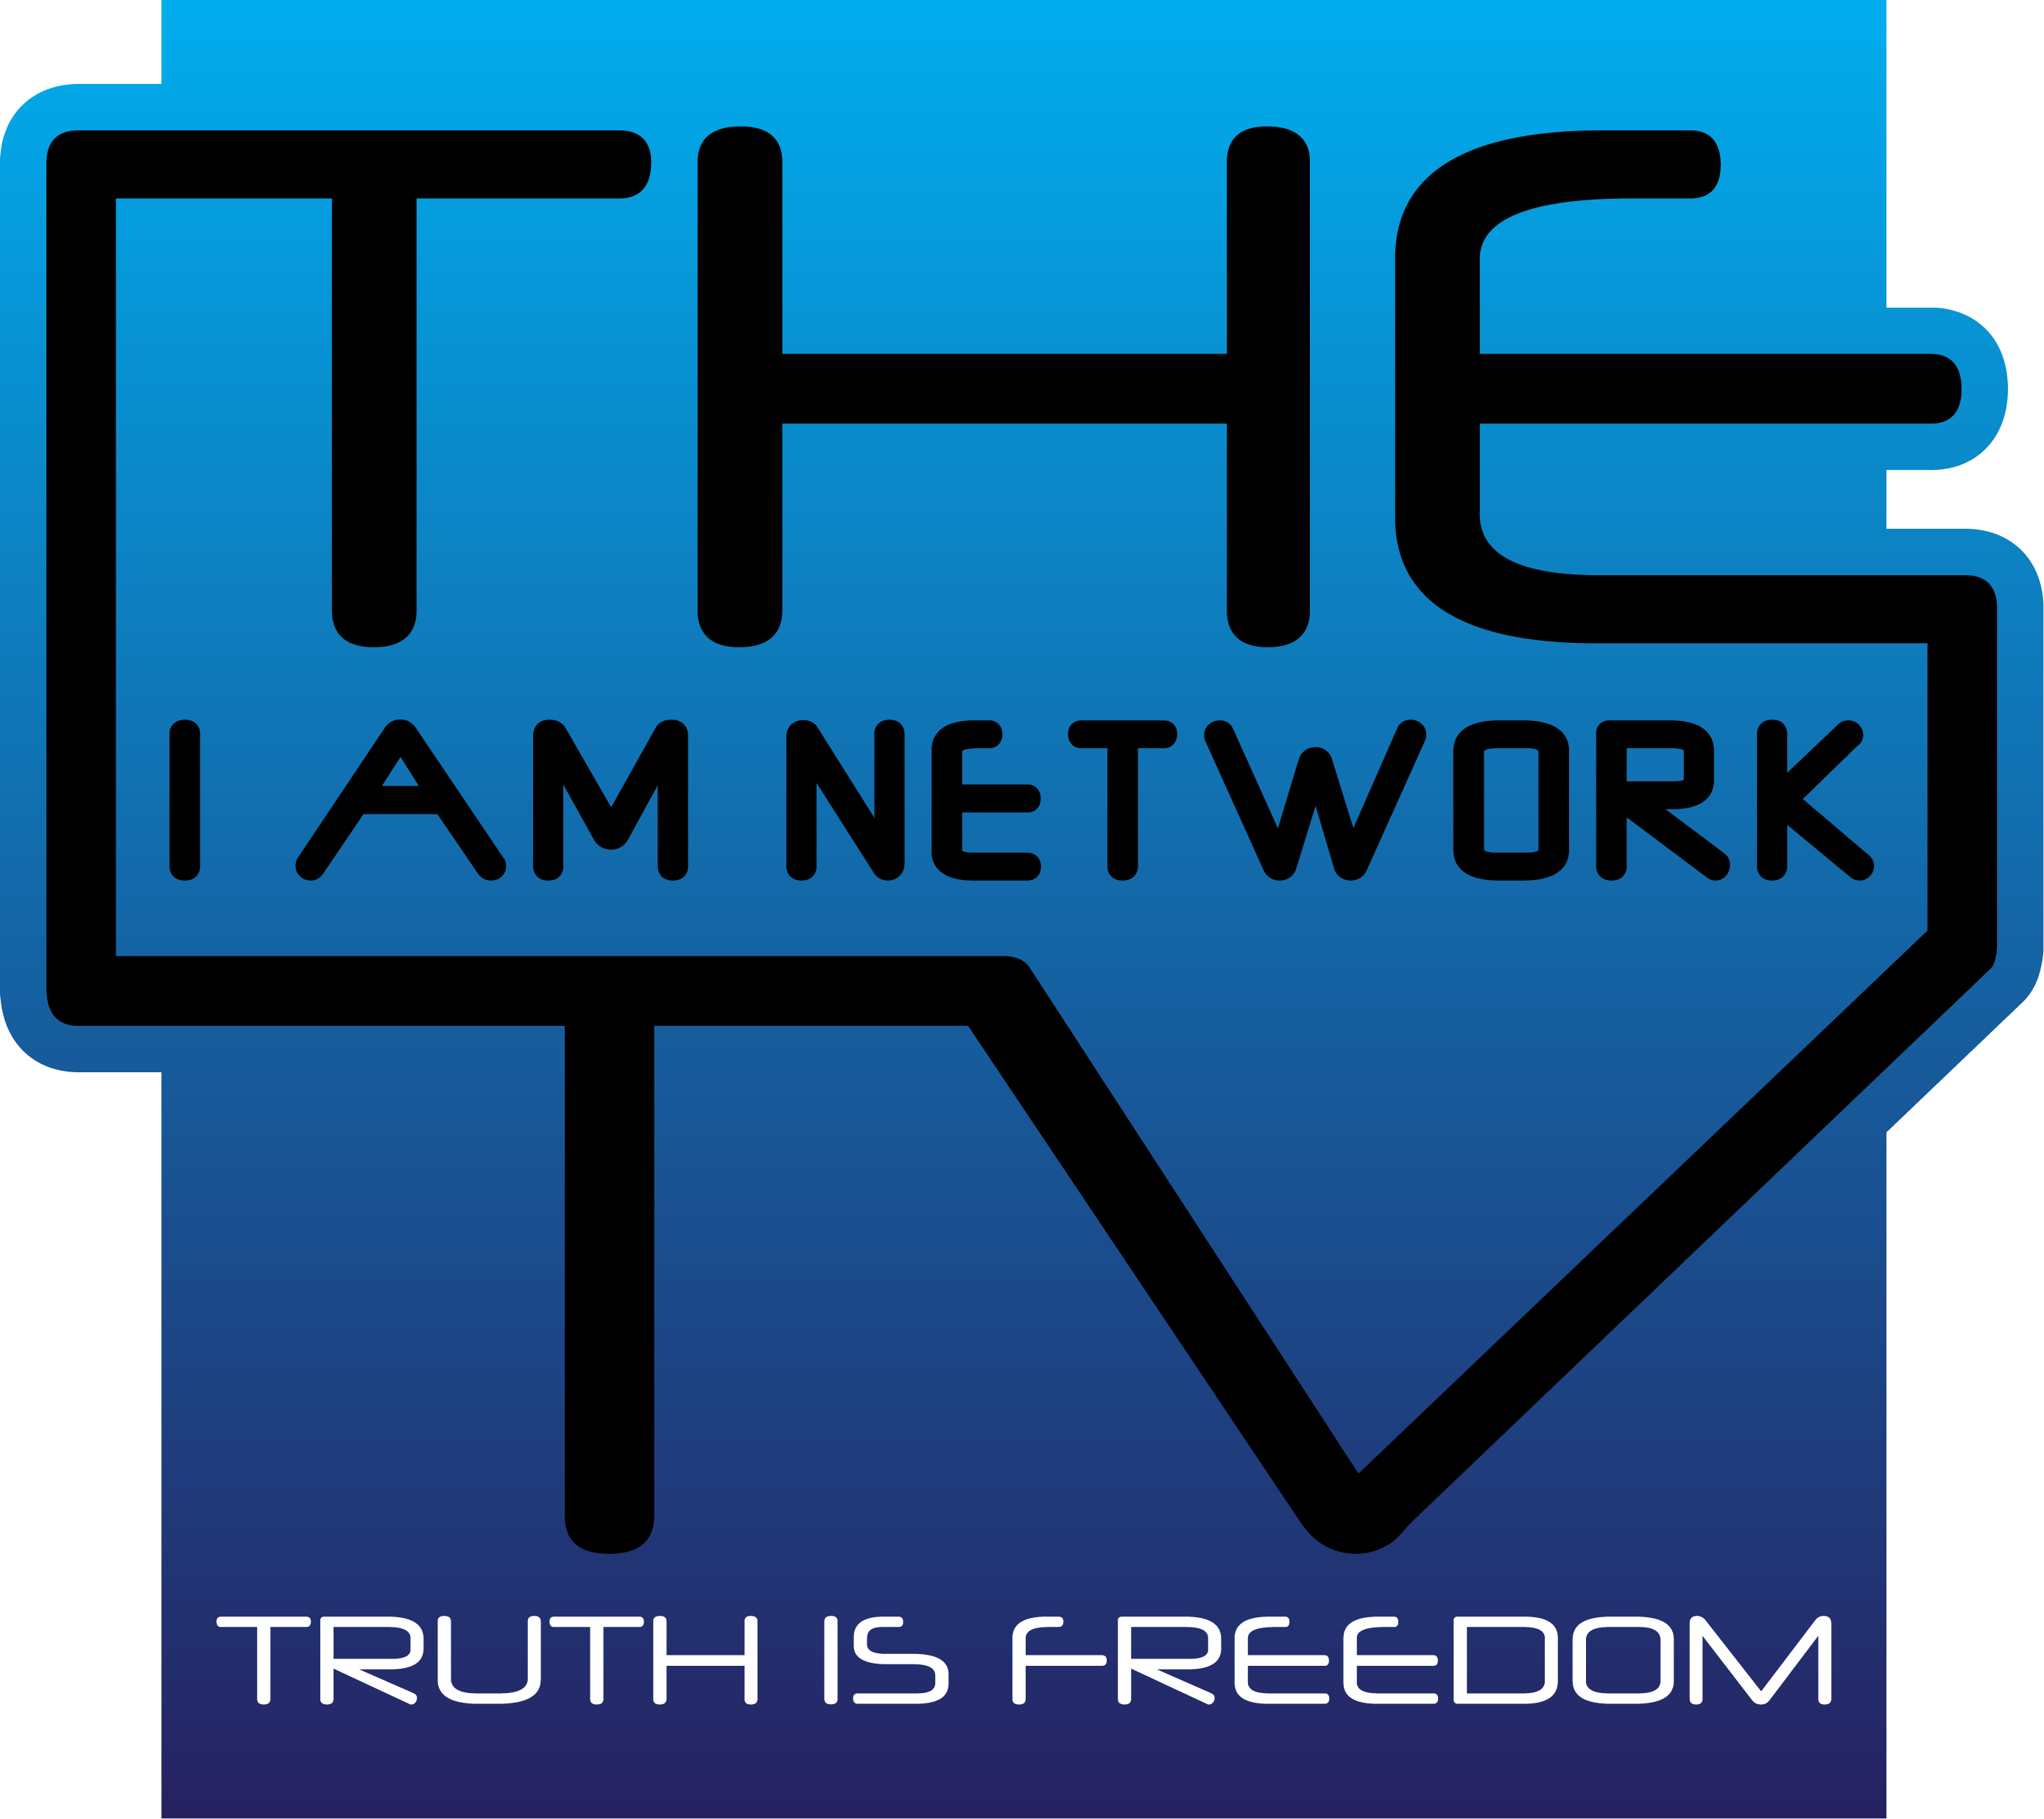 The I AM Network TV